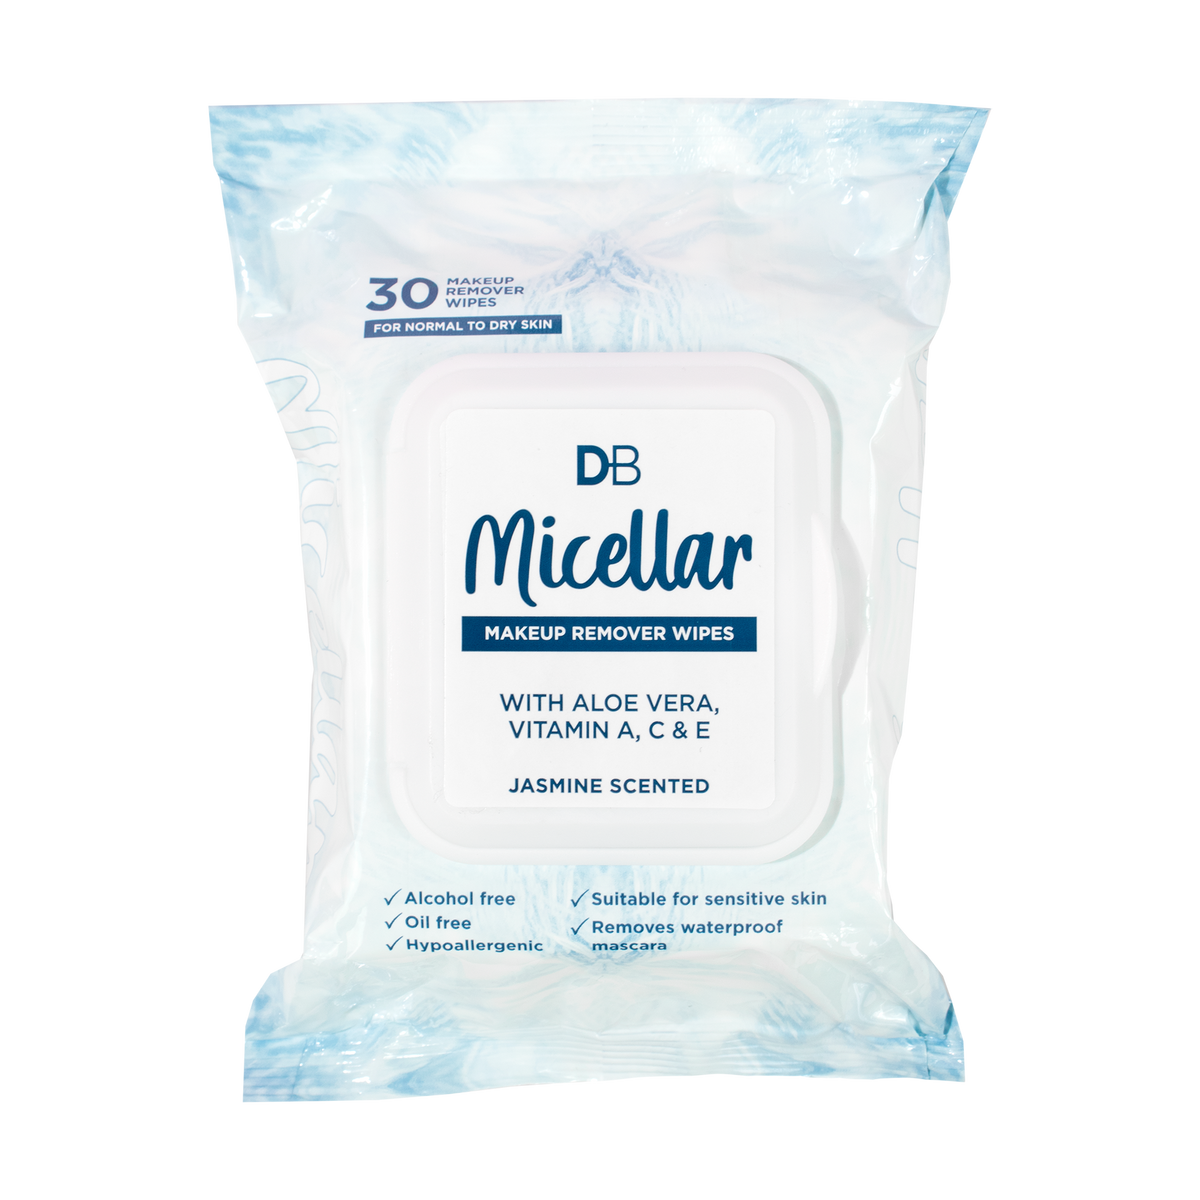 Micellar Makeup Remover Wipes (30 pk)